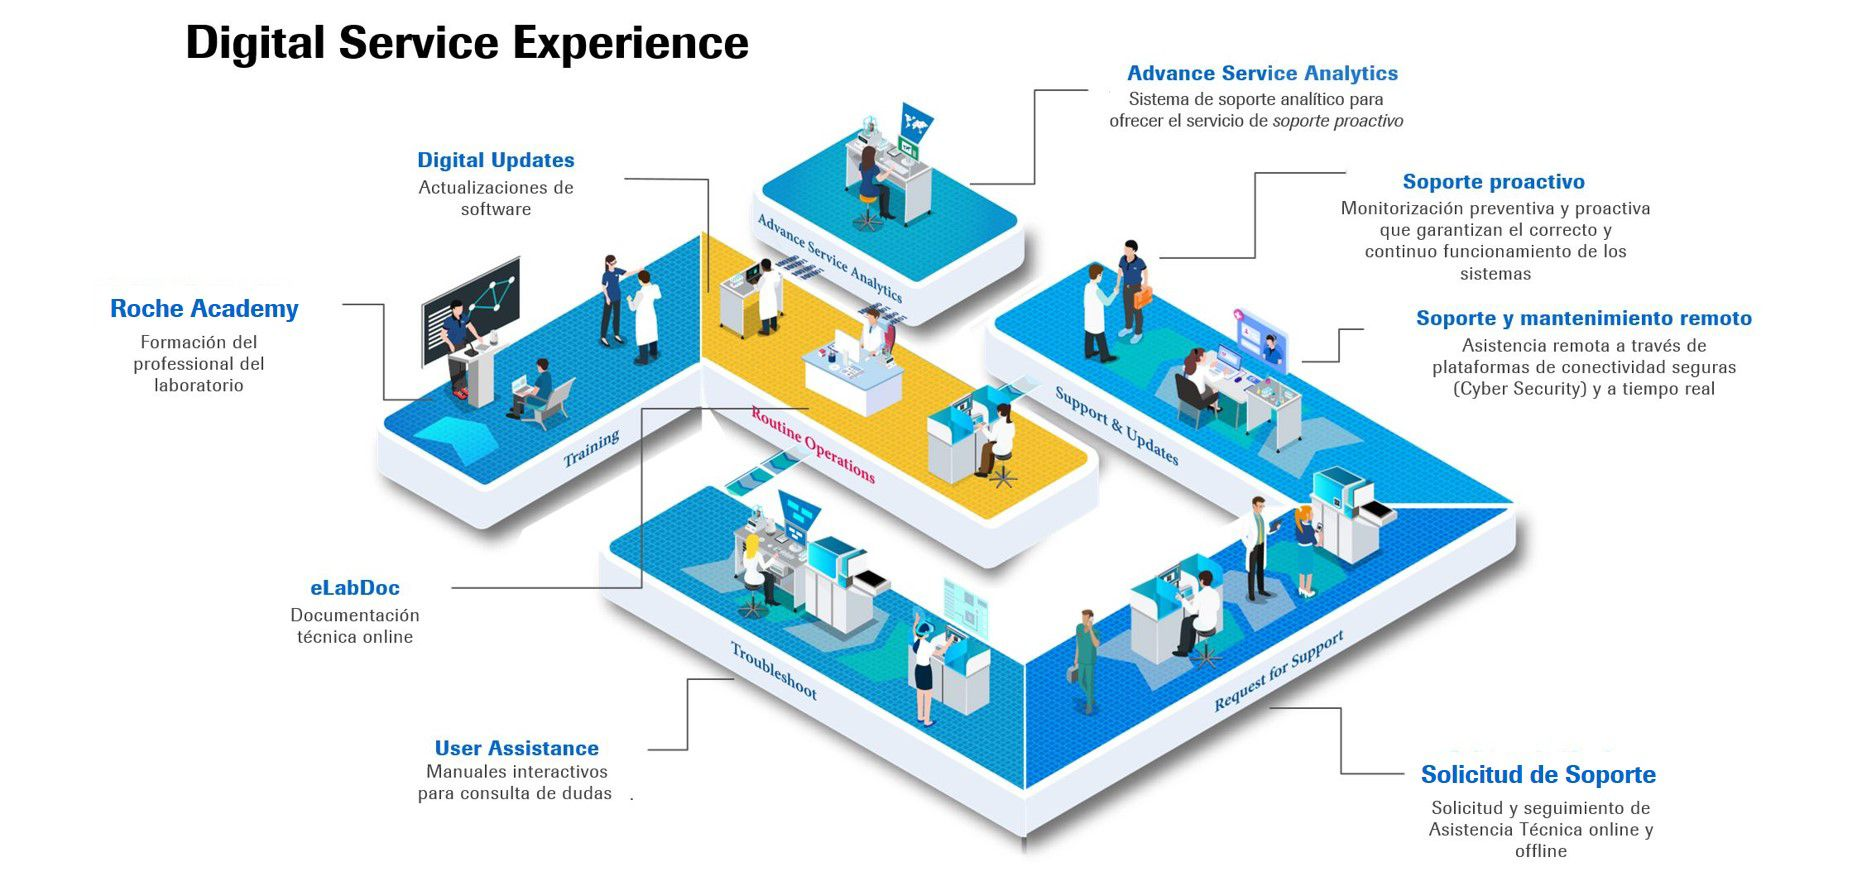 Digital Services Experience